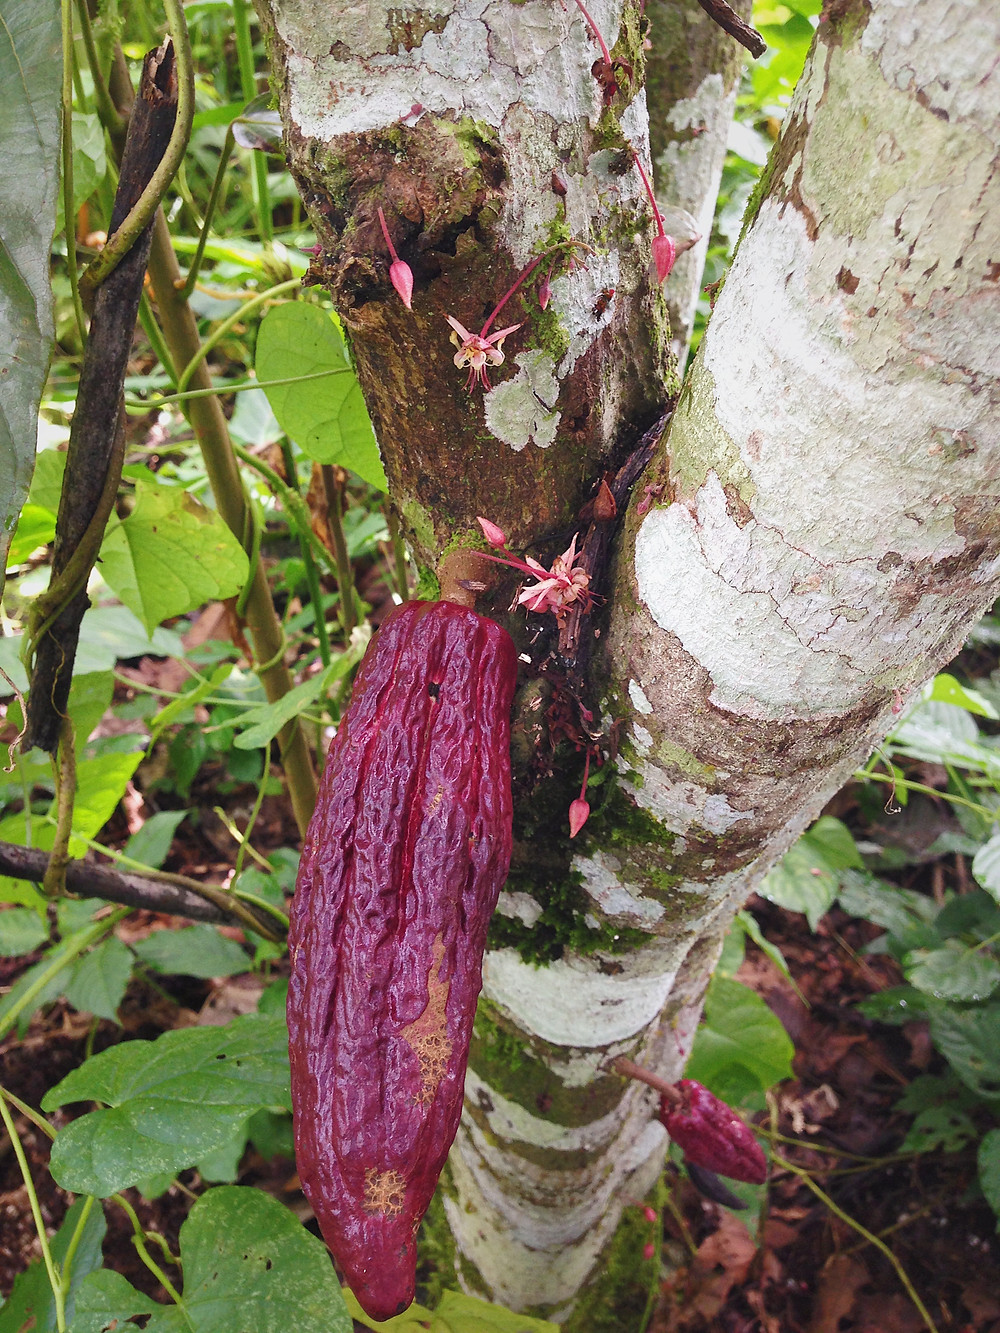 Cacao pod and flowers